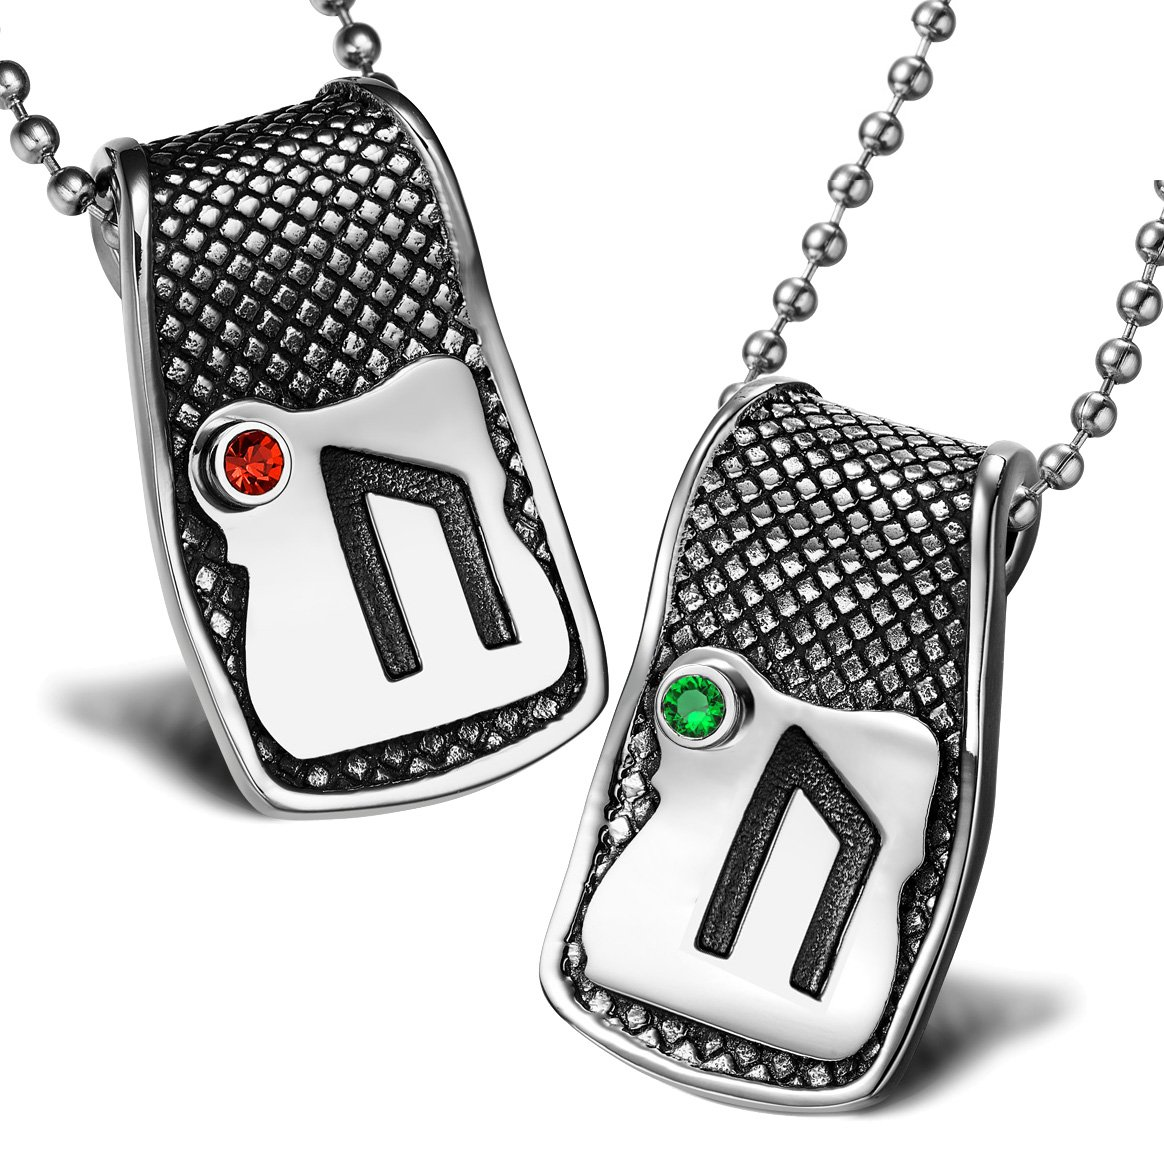 Unique Rune Uruz Strength Powers Love Couples or Best Friends Amulets Set Green Red Crystals Necklaces